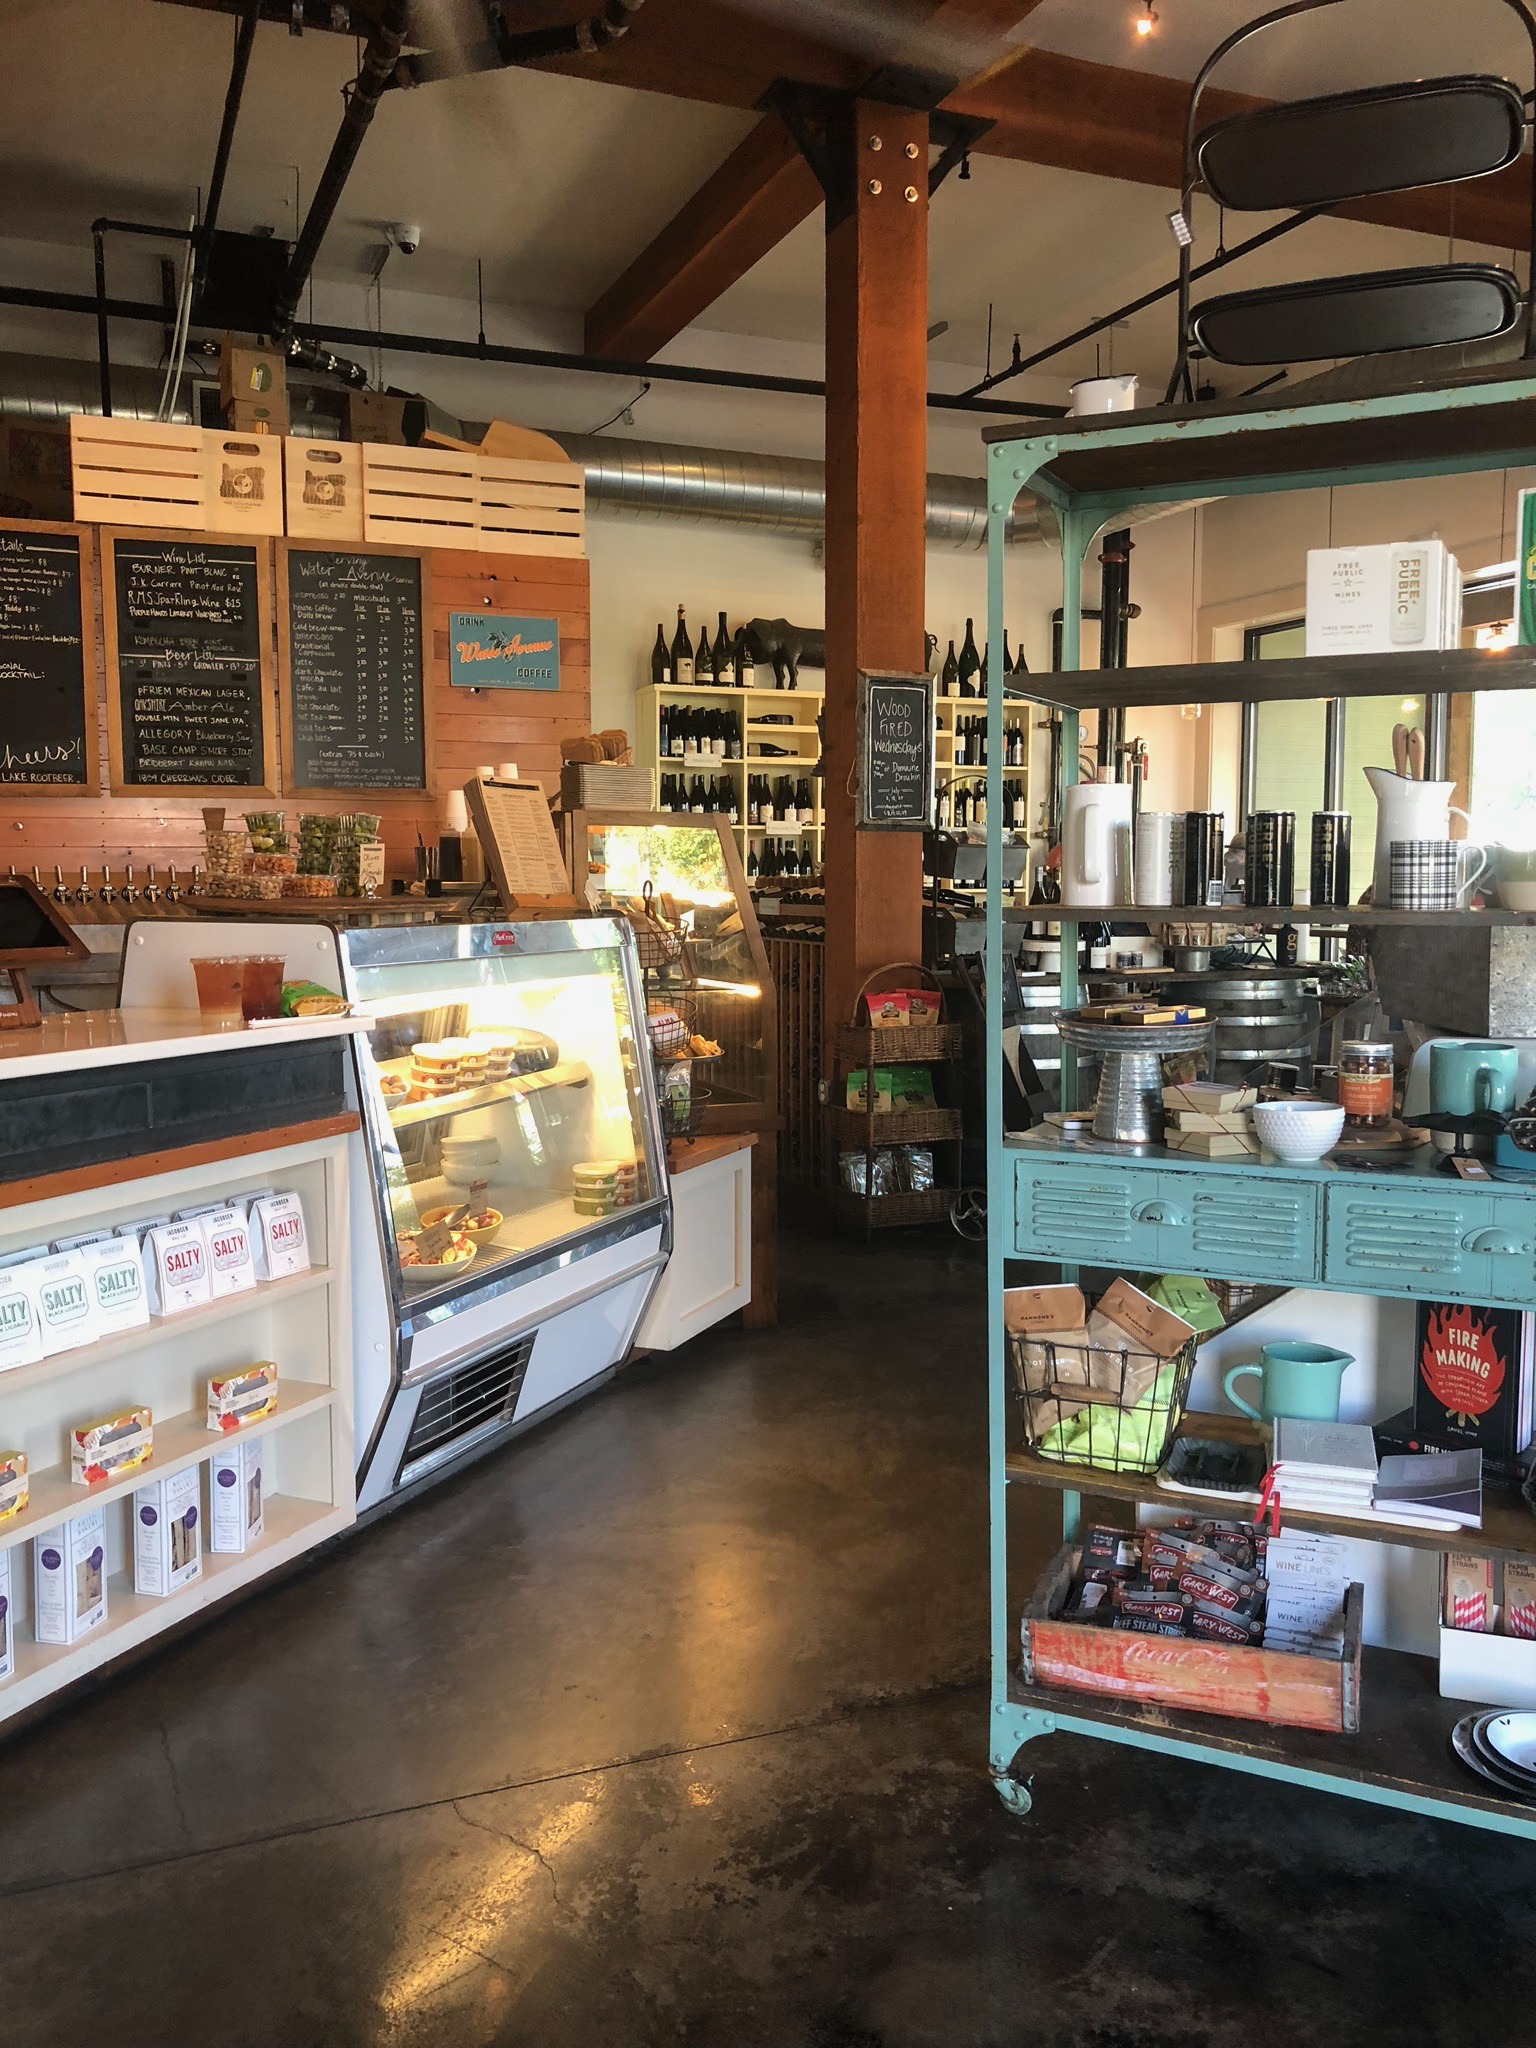 Market full of fun finds! - Whether your enjoying wonderful morning coffee with friends, packing up a picnic for an afternoon of wine tasting, grabbing a quick sandwich or shopping for a last minute gift this is the spot.